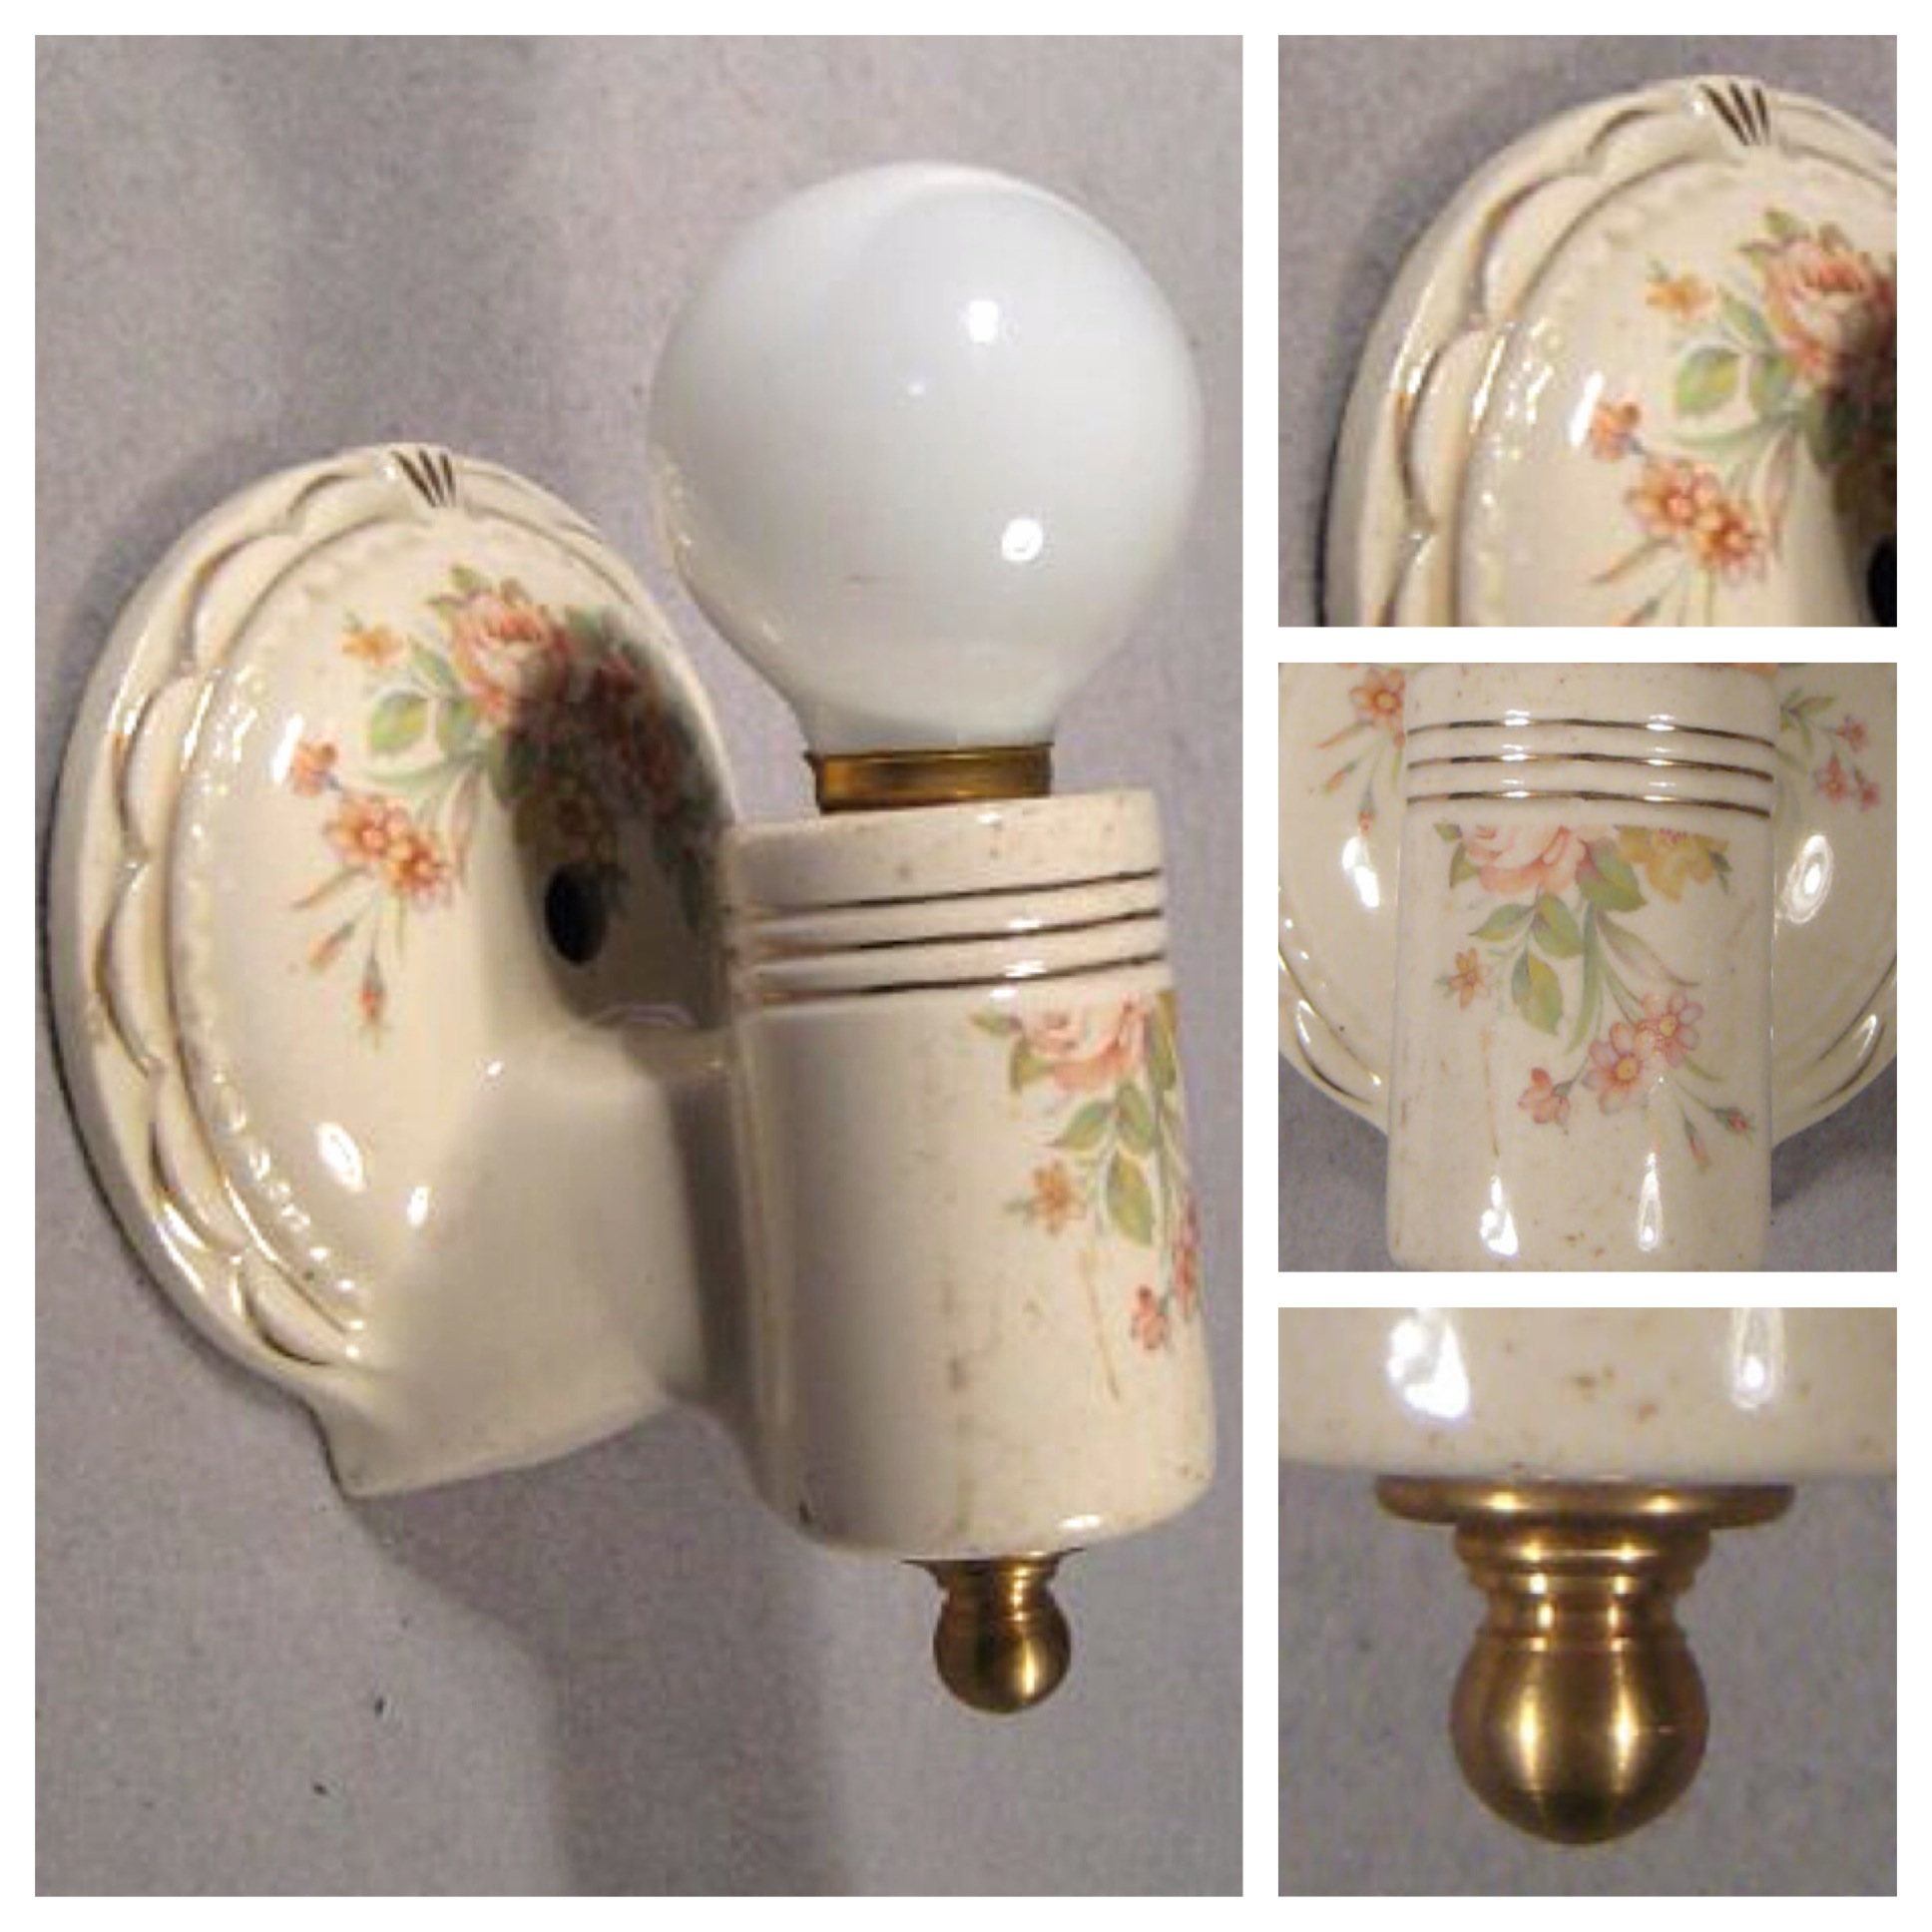 A8417 single porcelain wall sconce bogart bremmer bradley a8417 single porcelain wall sconce amipublicfo Image collections